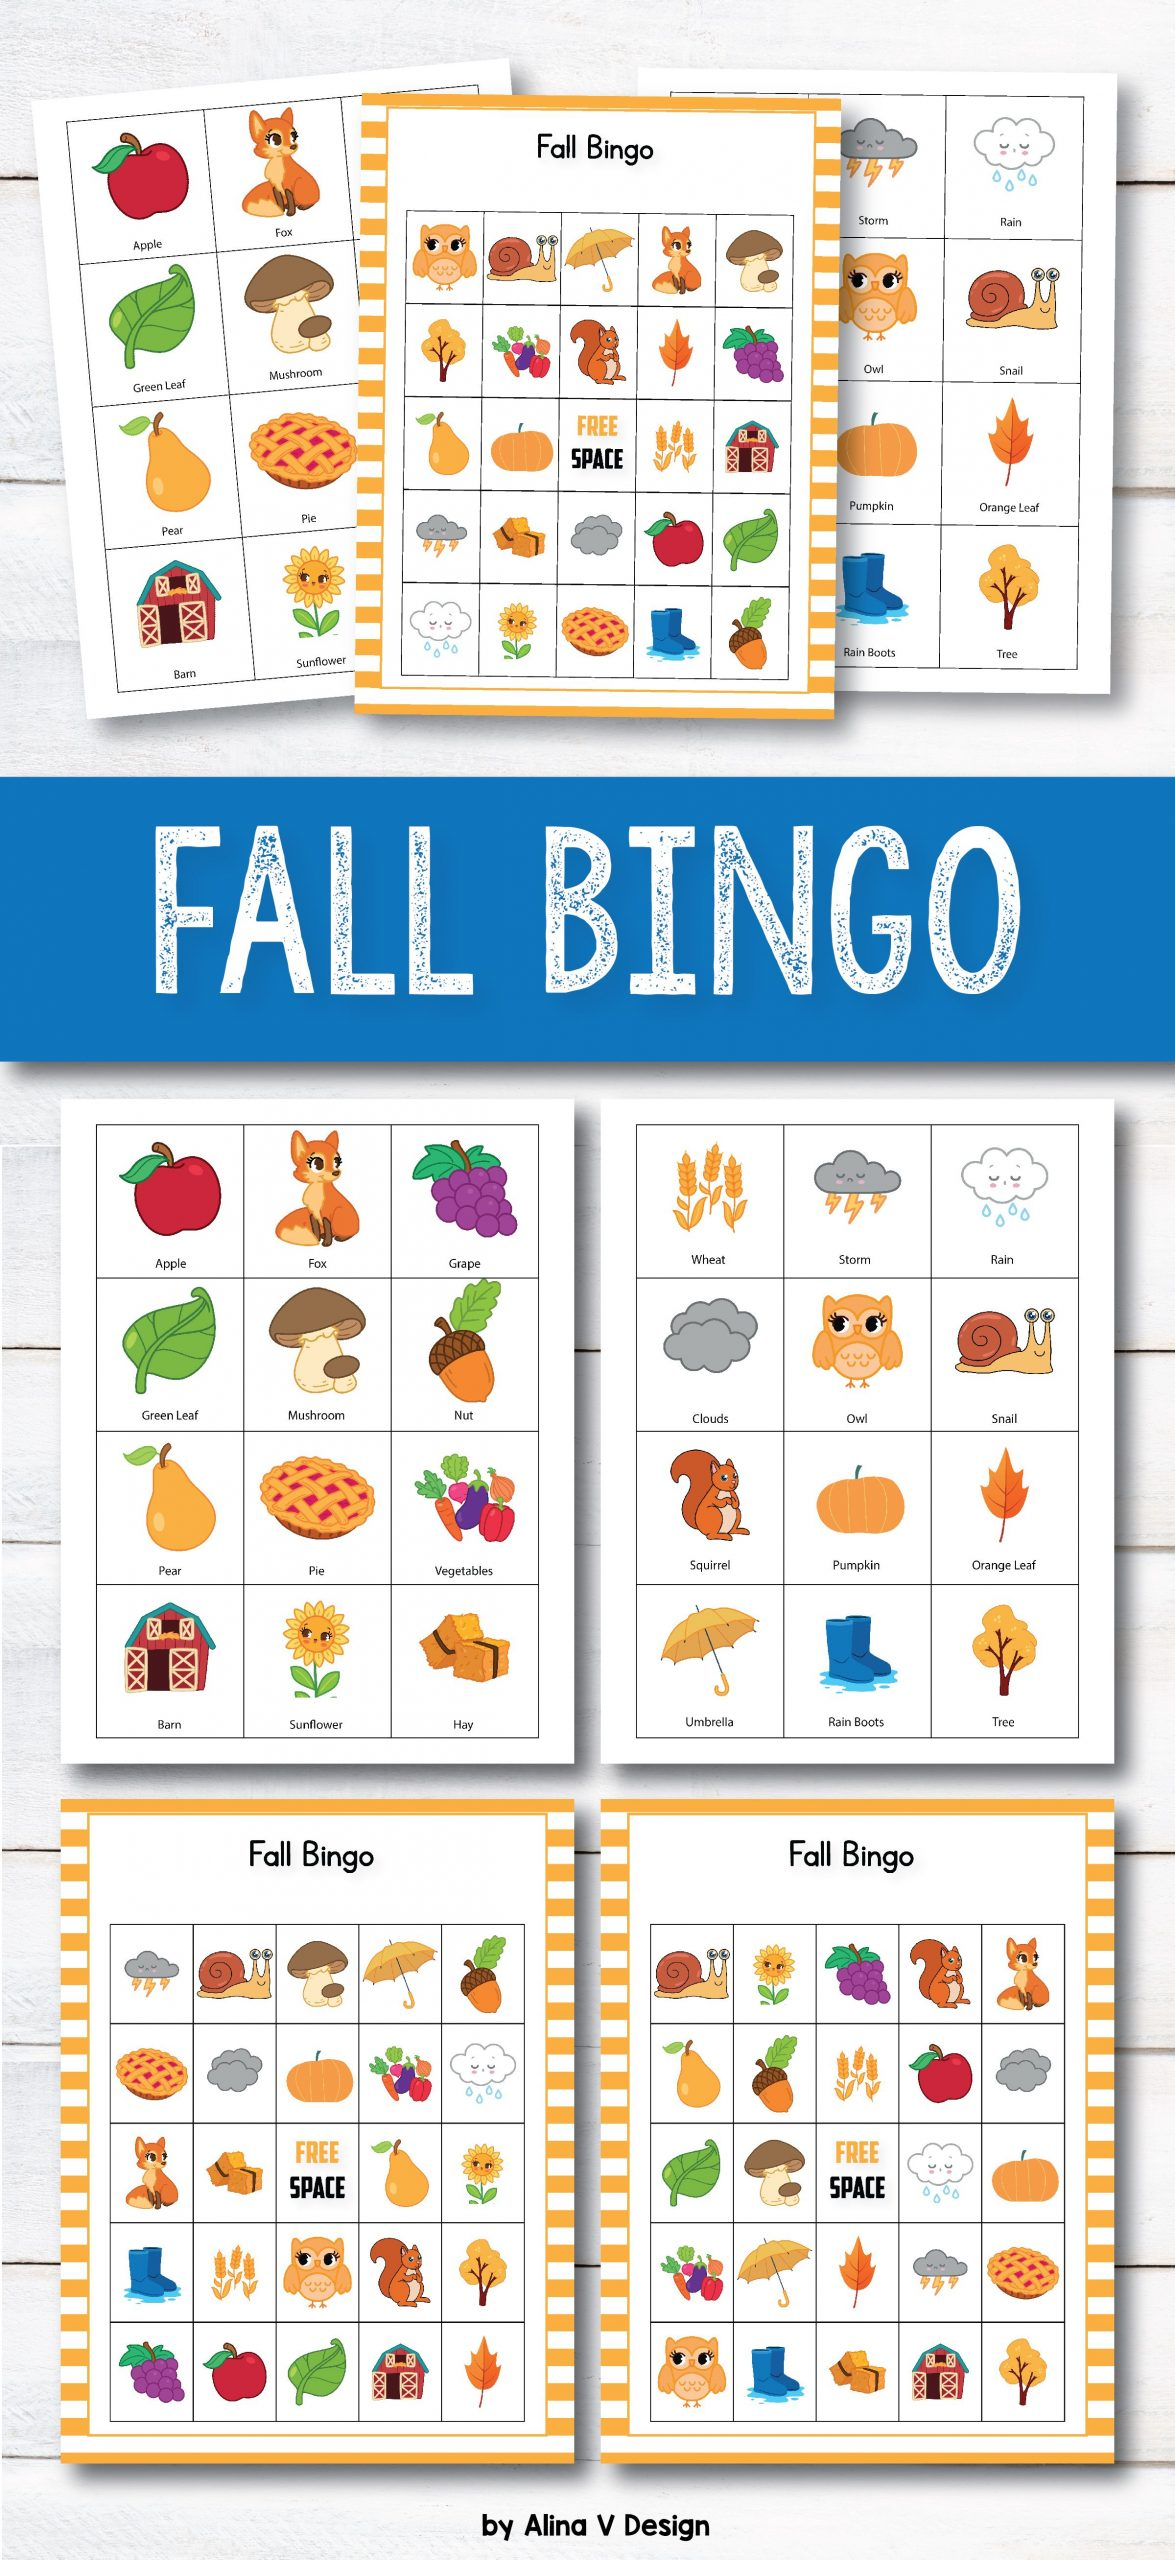 Fall Bingo Cards Preschool - Autumn Bingo, Fall Games